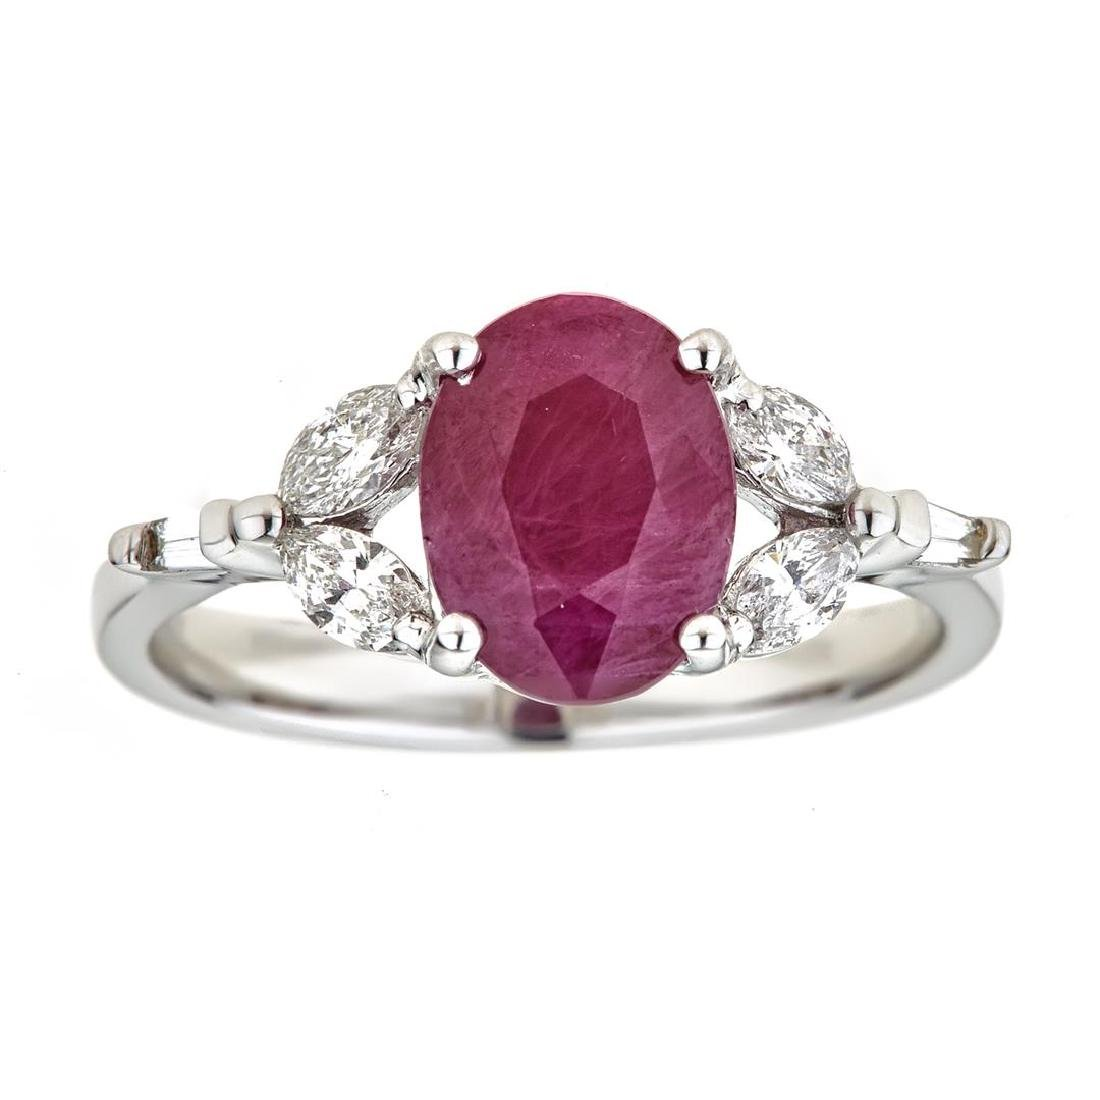 2.98 ctw Ruby and Diamond Ring - 18KT White and Yellow